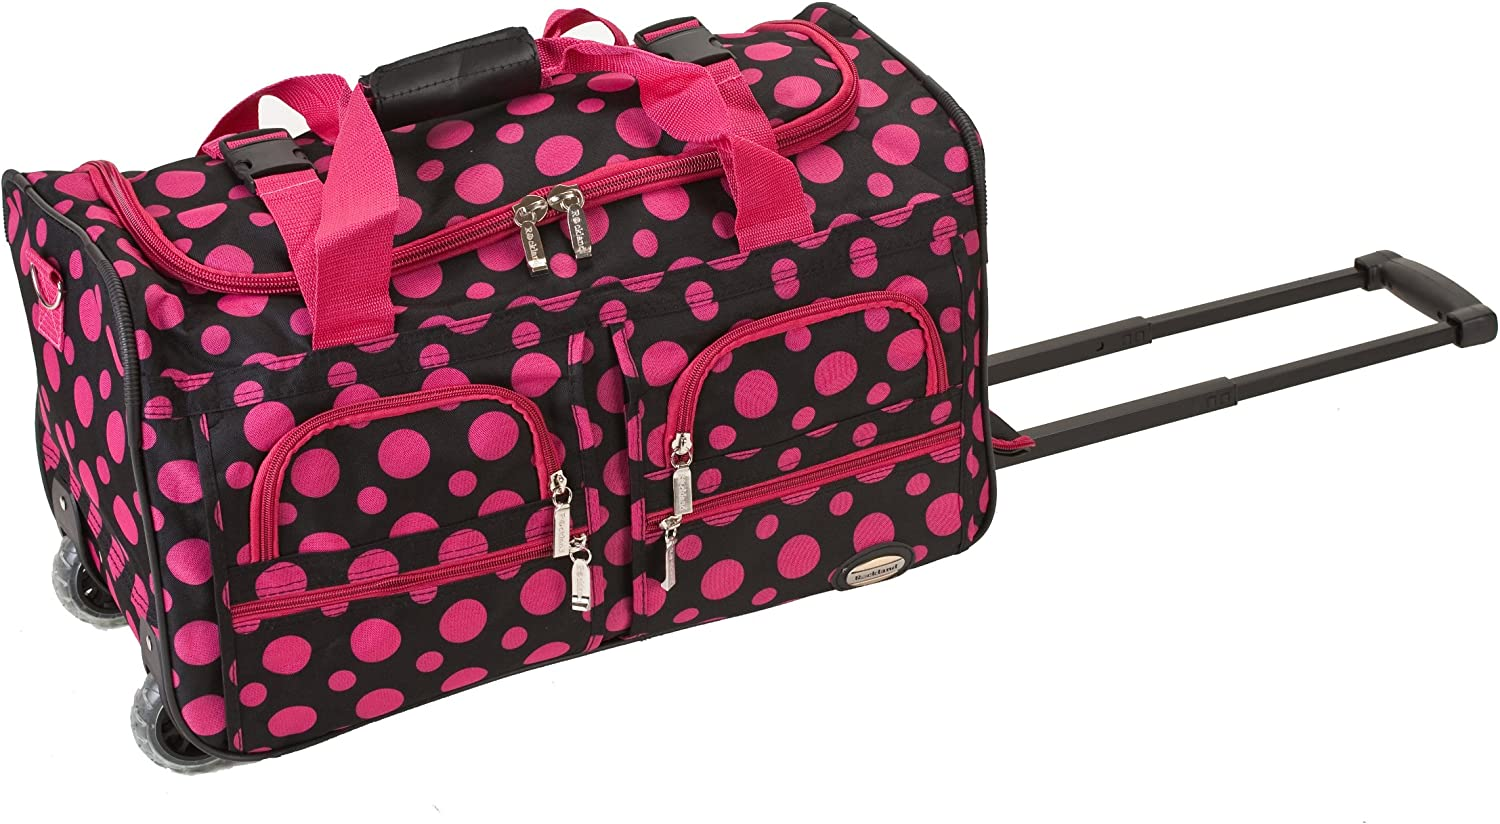 Rockland Rolling Duffel Bag, Black/Pink Dot, 22-Inch